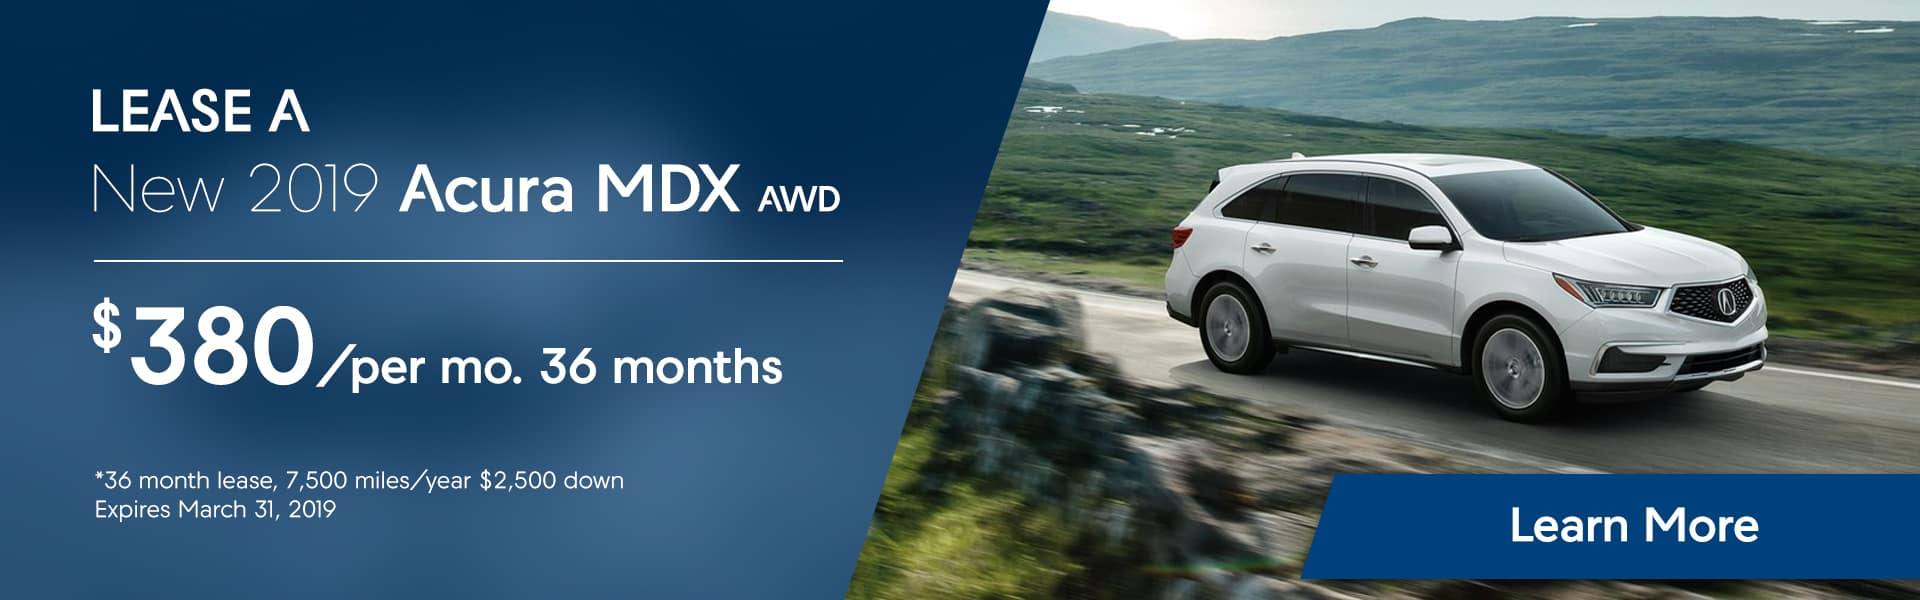 MDX specials at Hubler Acura for Feb 2019